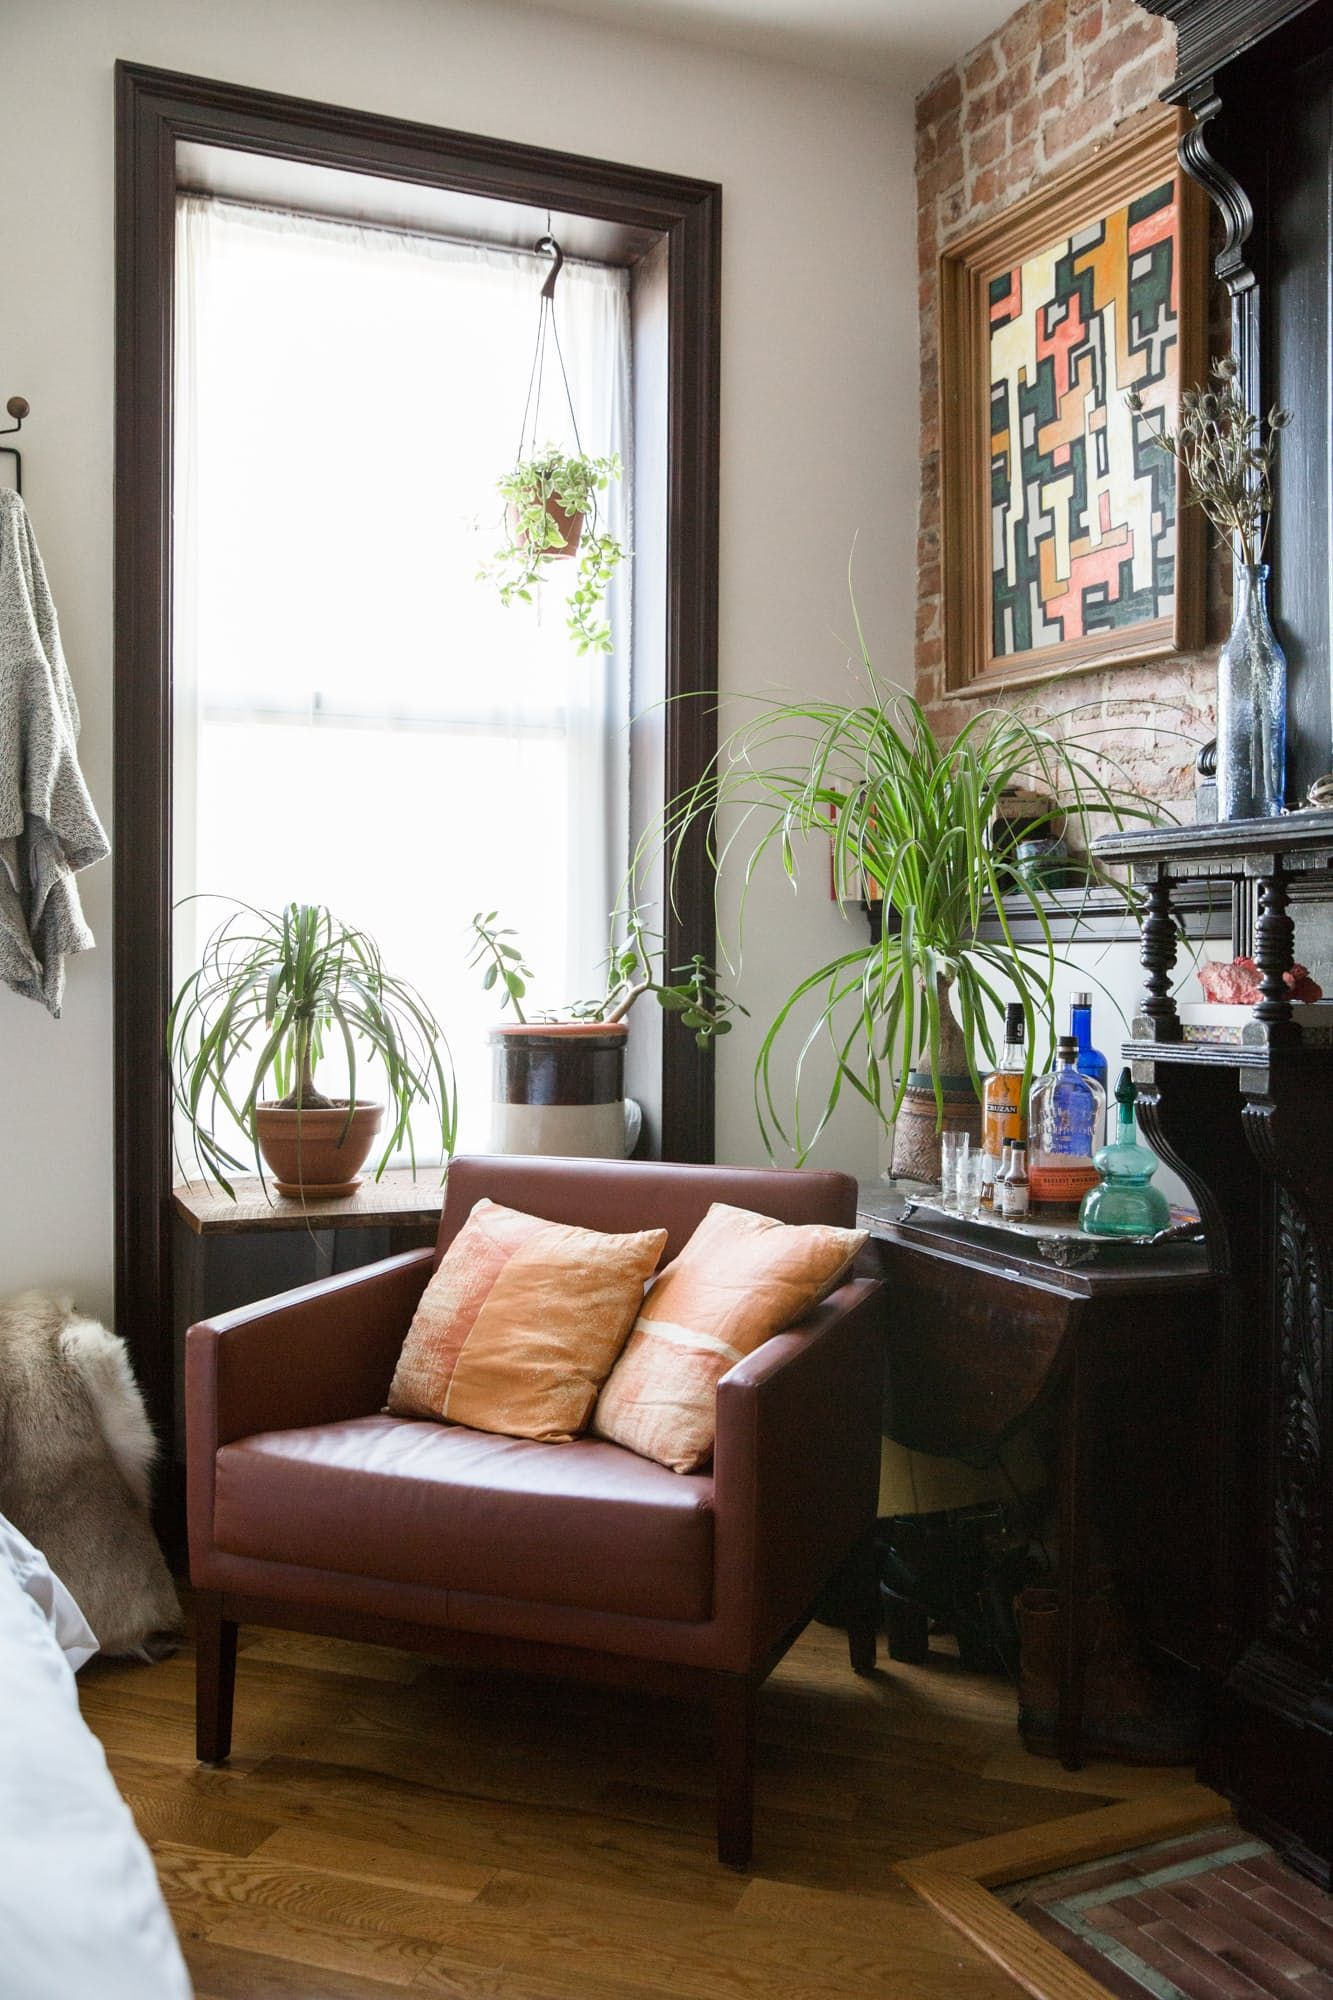 Tour a Charming 280 Square Foot Crown Heights Studio